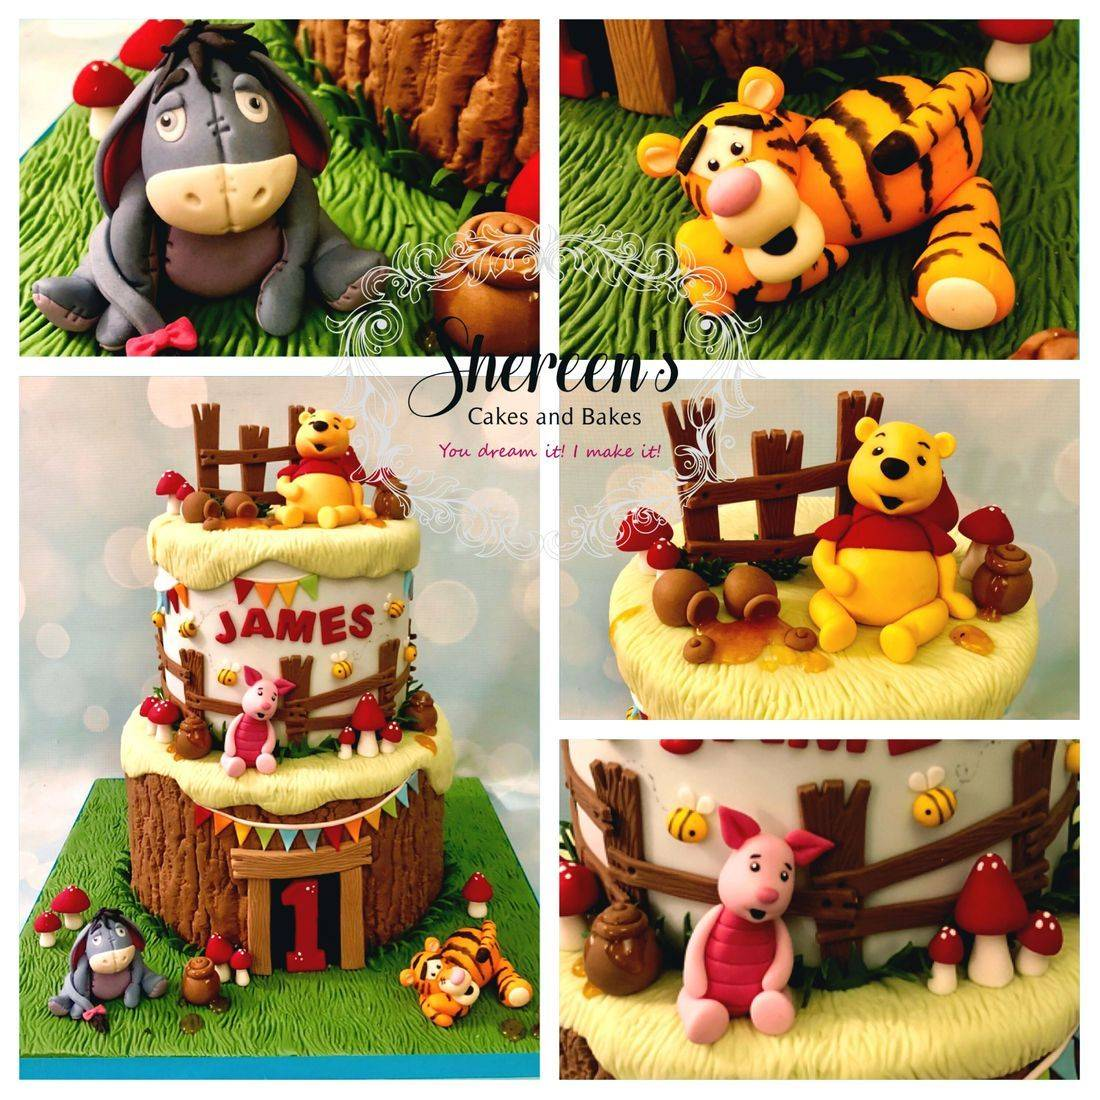 Birthday first cake Pooh bear friends tigger eeyore piglet honey pots toadstools bees bunting